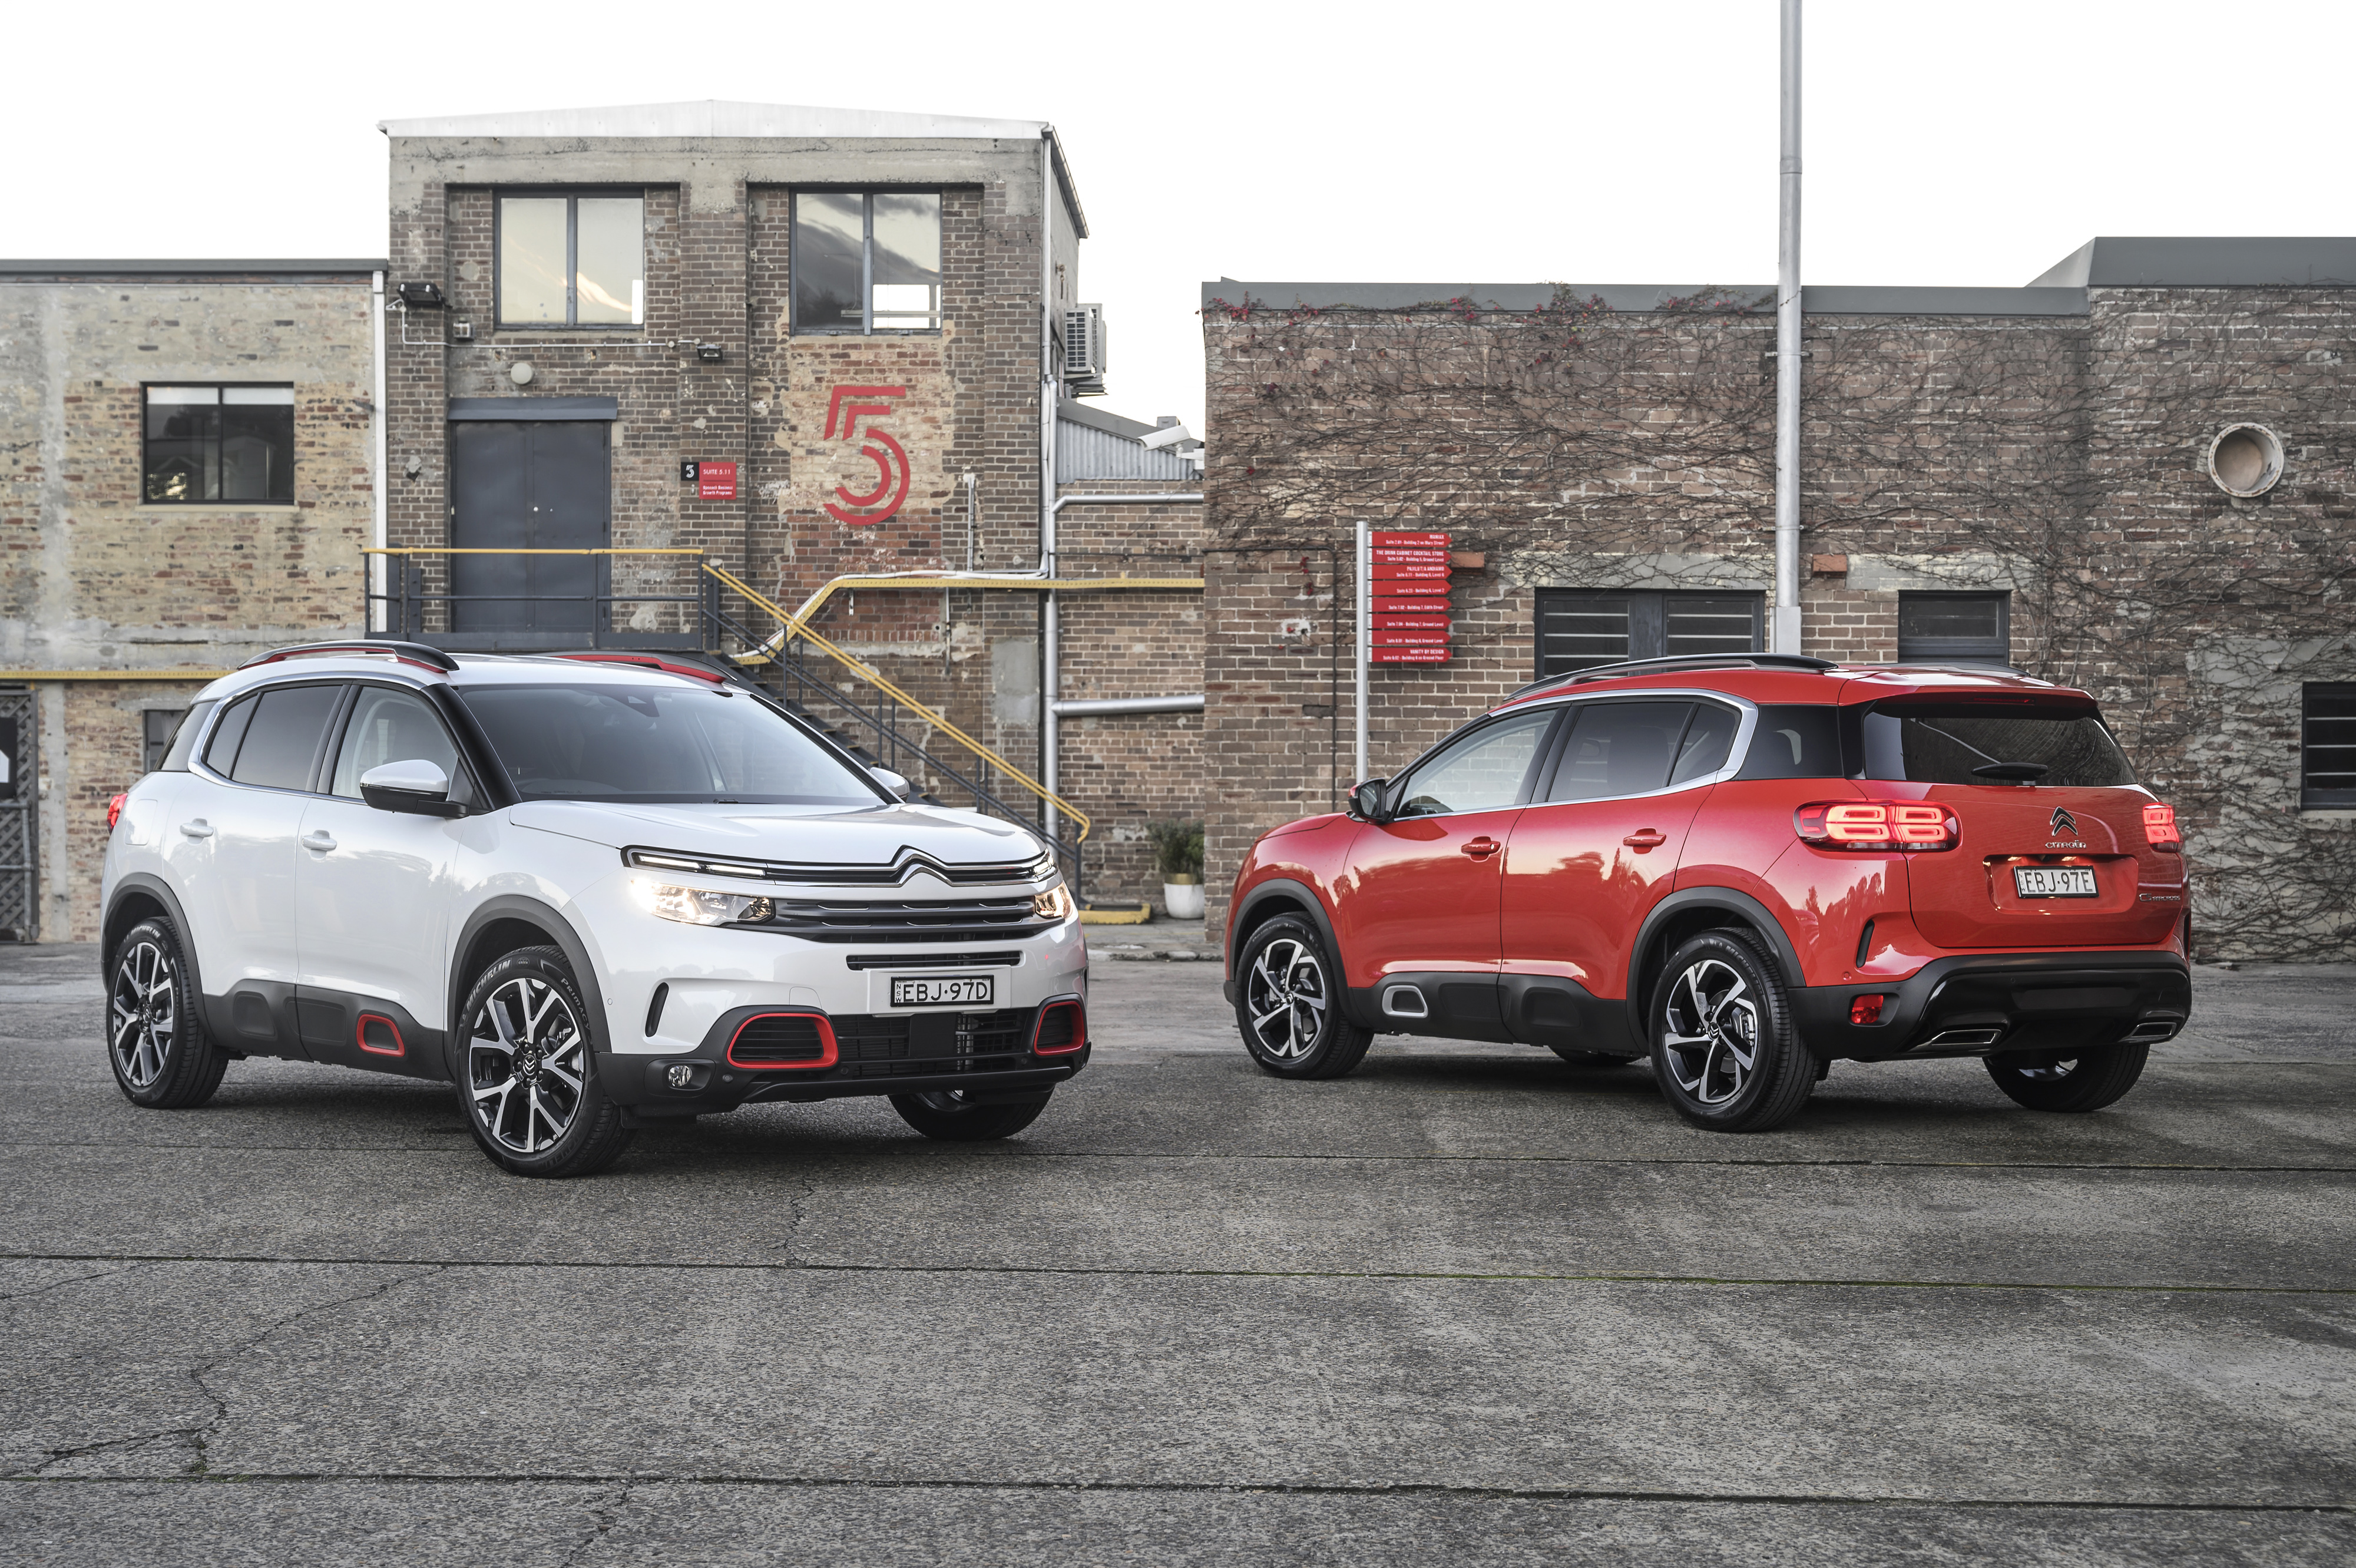 Citroen's C5 AirCross SUV – the best product from the French car maker for some time